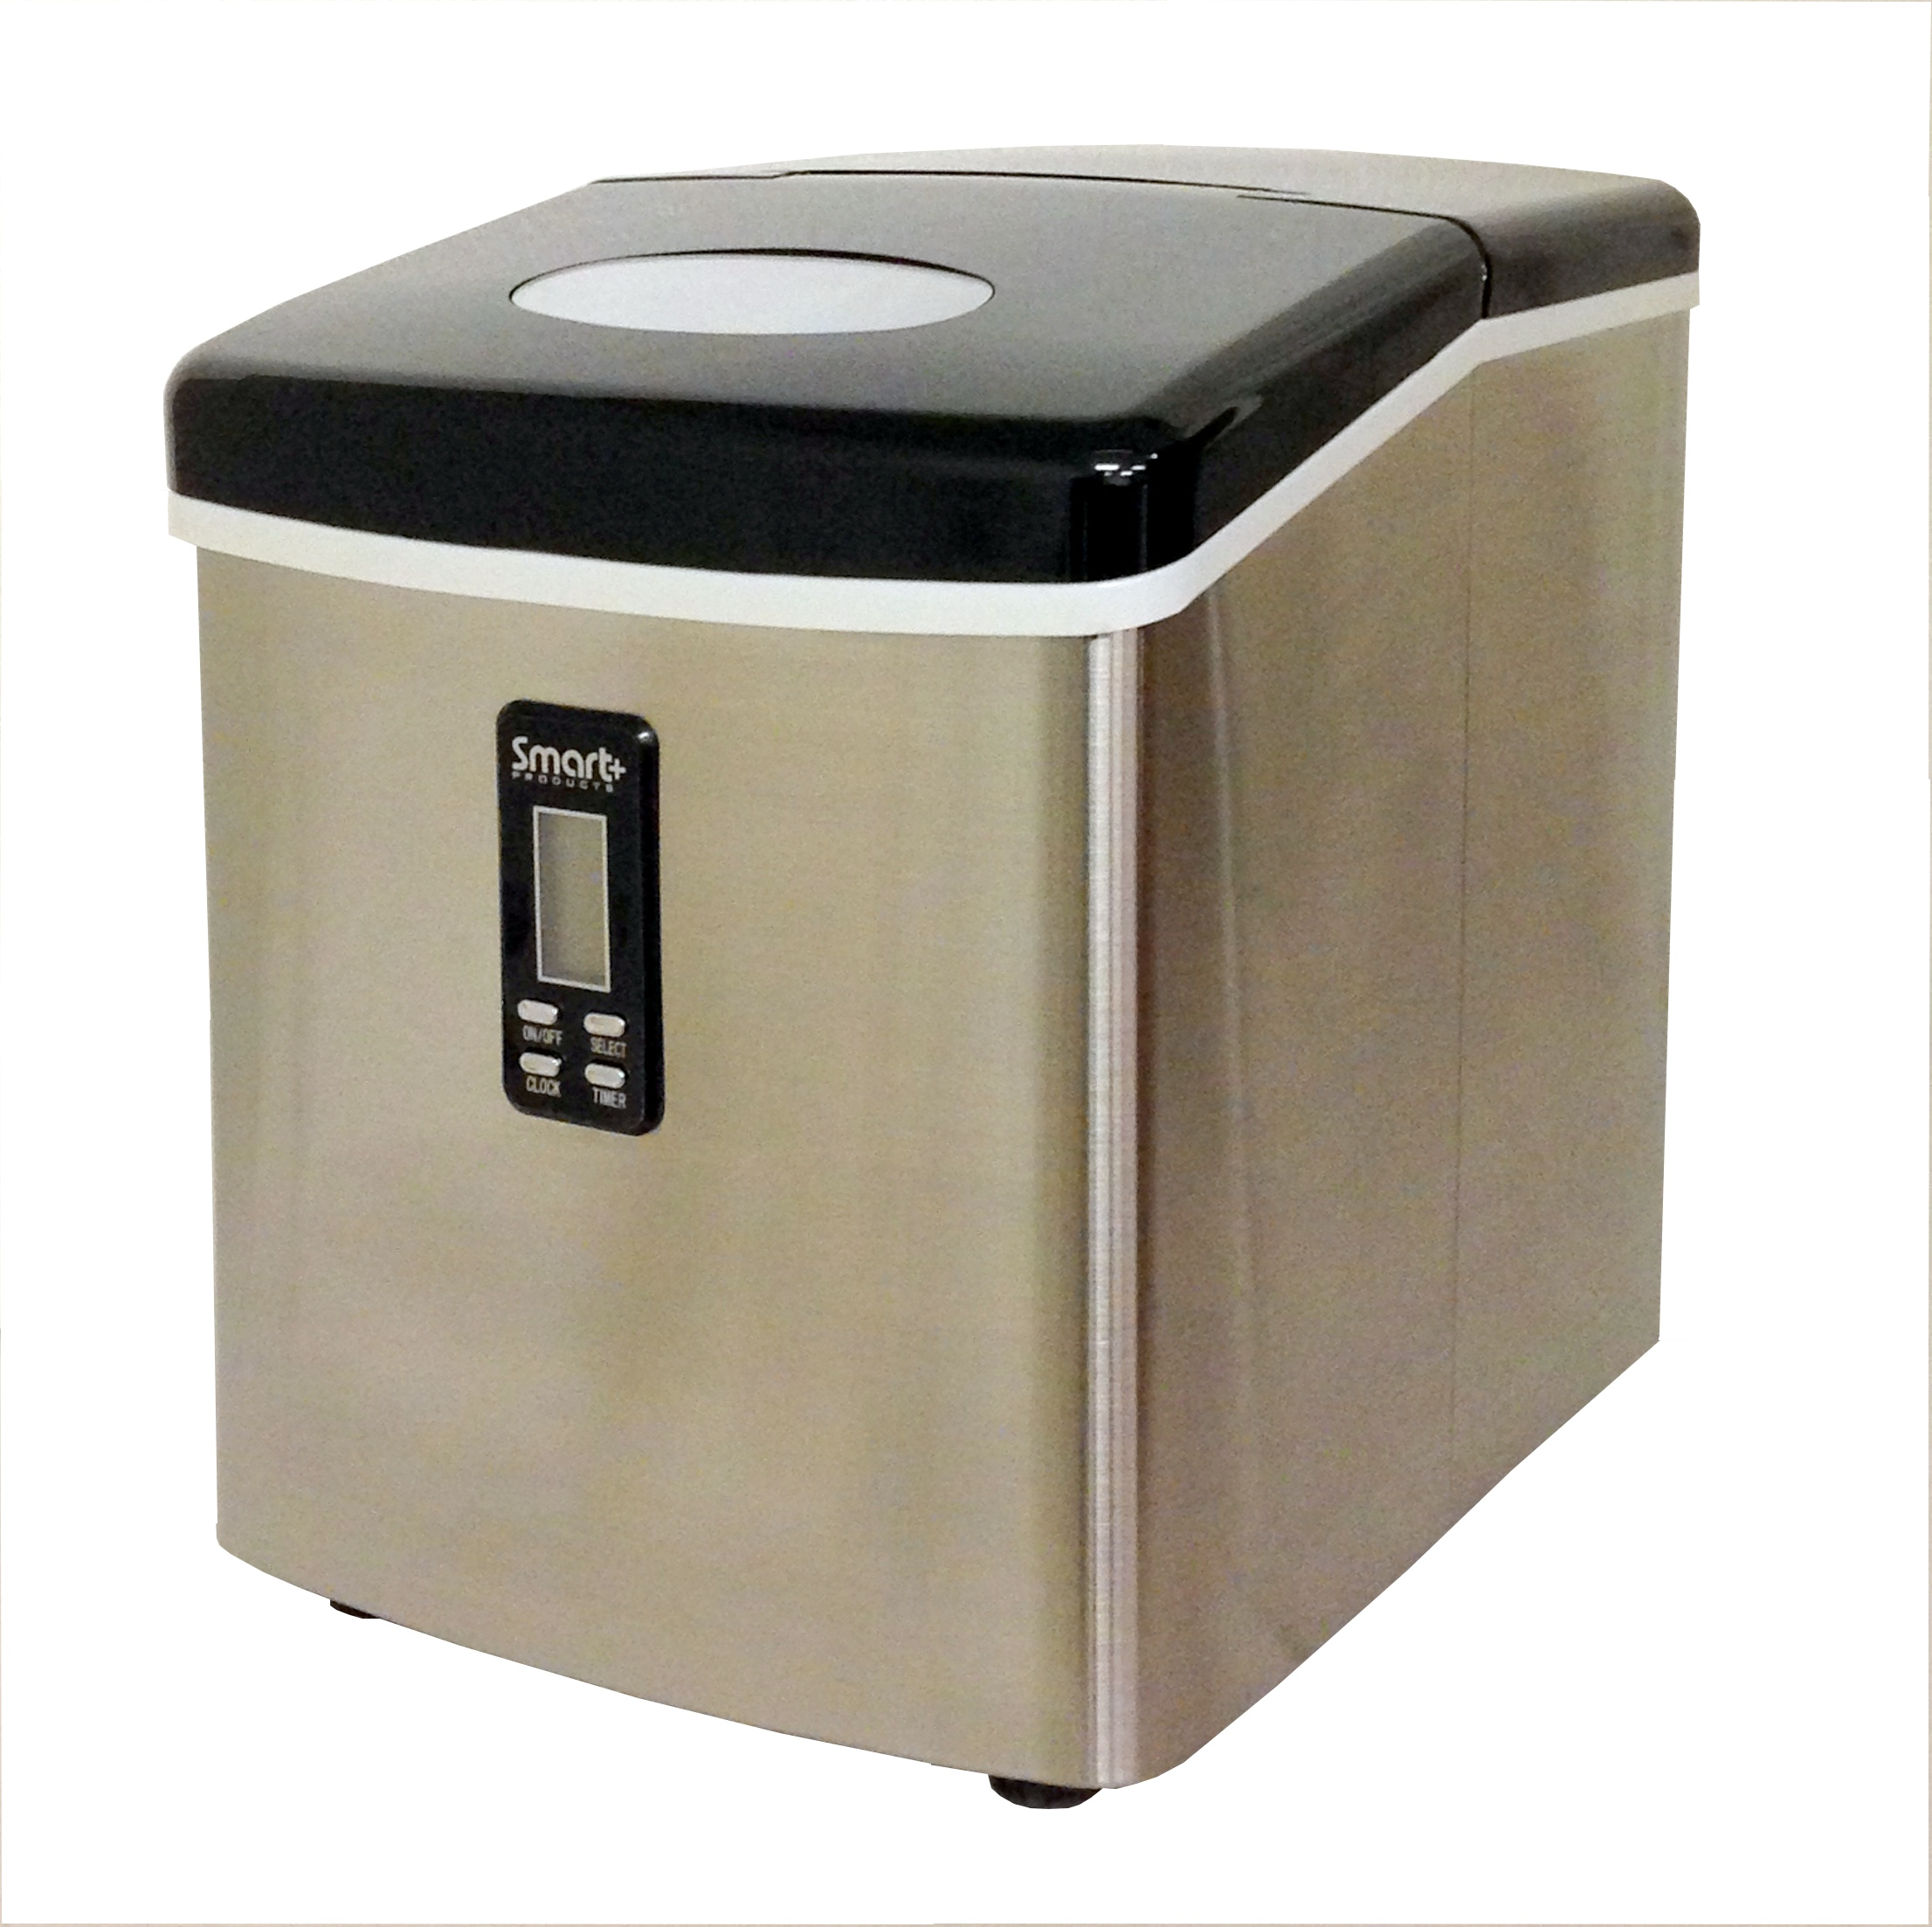 ... Smart+ Portable Countertop Ice Maker Machine Stainless Steel SPP15AIM